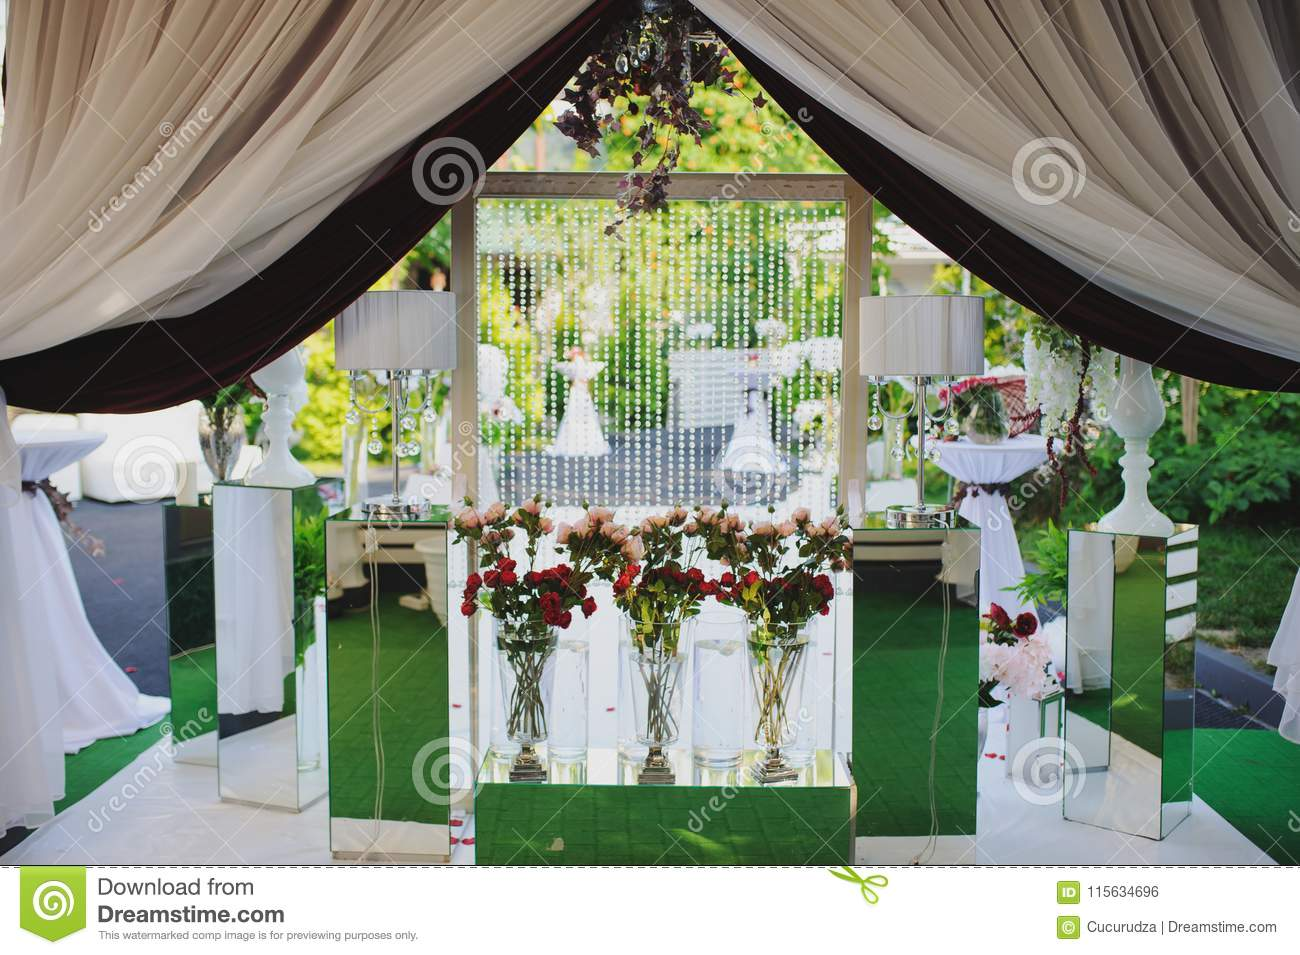 wedding wall photo session decoration outdoor wedding wall photo session decoration outdoor red flowers decoration